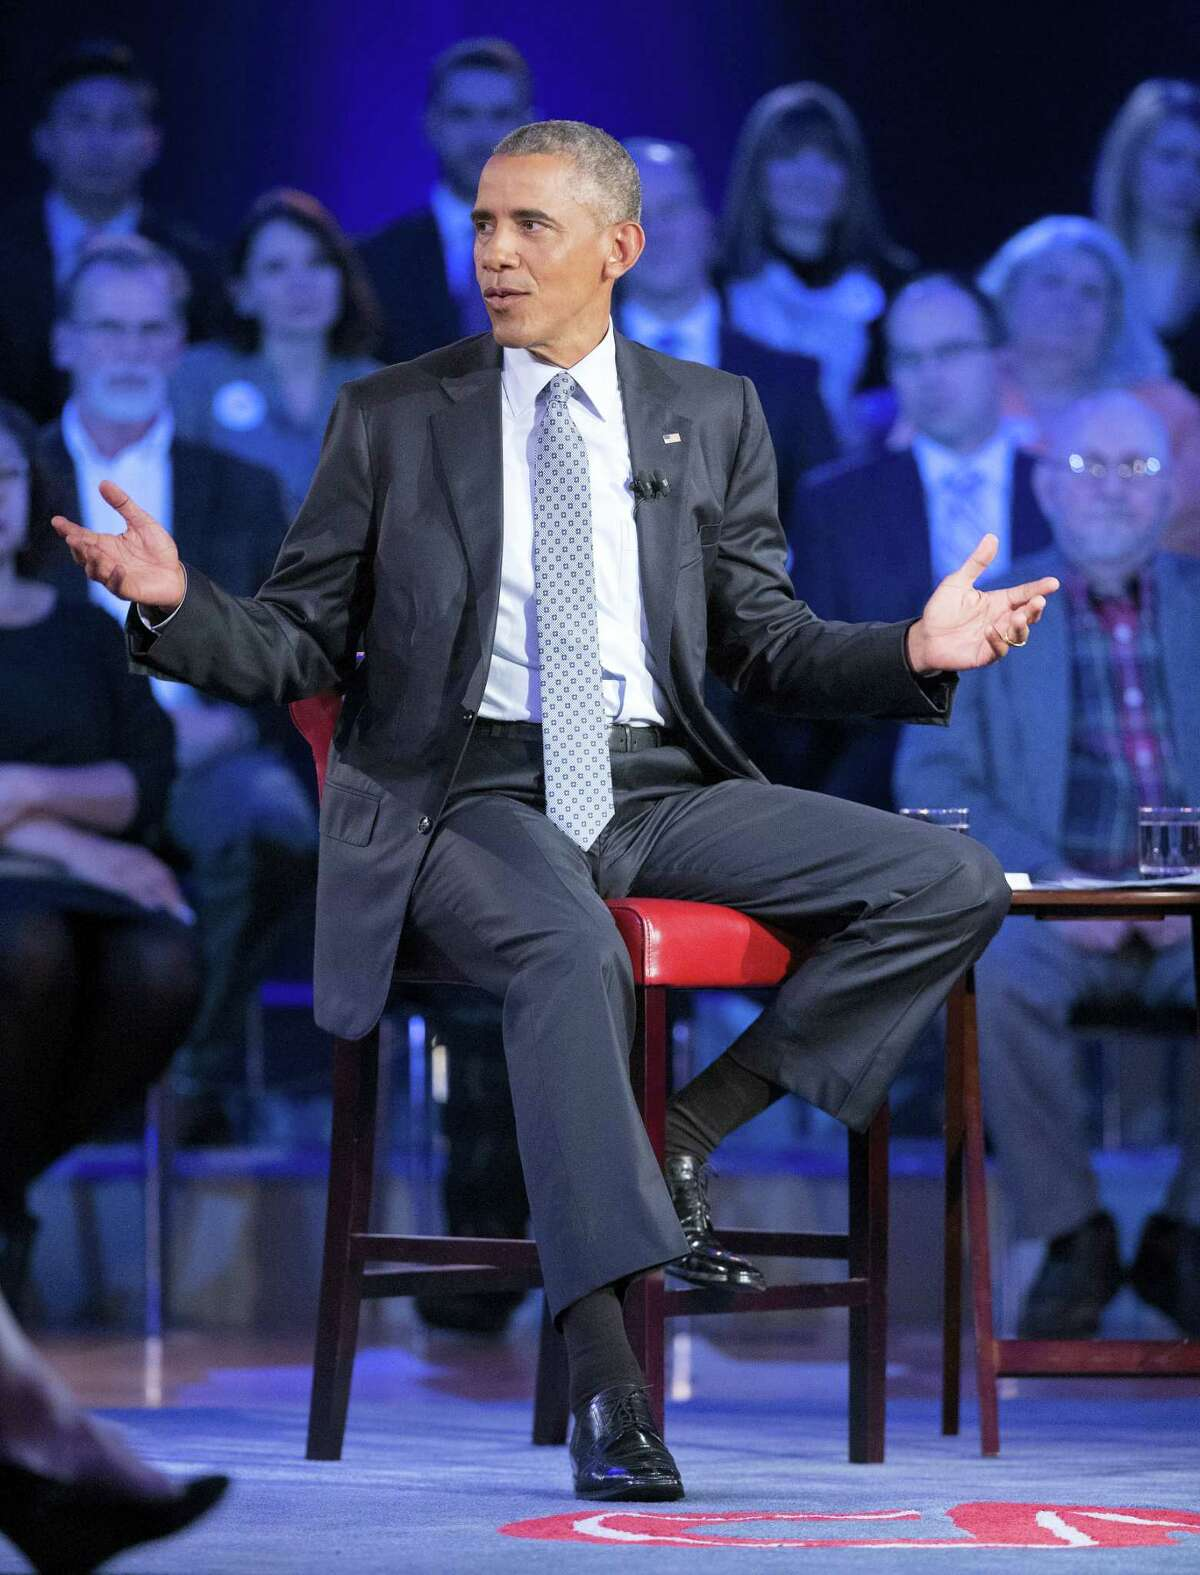 President Barack Obama answers questions during a CNN televised town hall meeting at George Mason University in Fairfax, Va., Thursday, Jan. 7, 2016. Obama's proposals to tighten gun controls rules may not accomplish his goal of keeping guns out of the hands of would-be criminals and those who aren't legally allowed to buy a weapon. In short, that's because the conditions he is changing by executive action are murkier than he made them out to be.